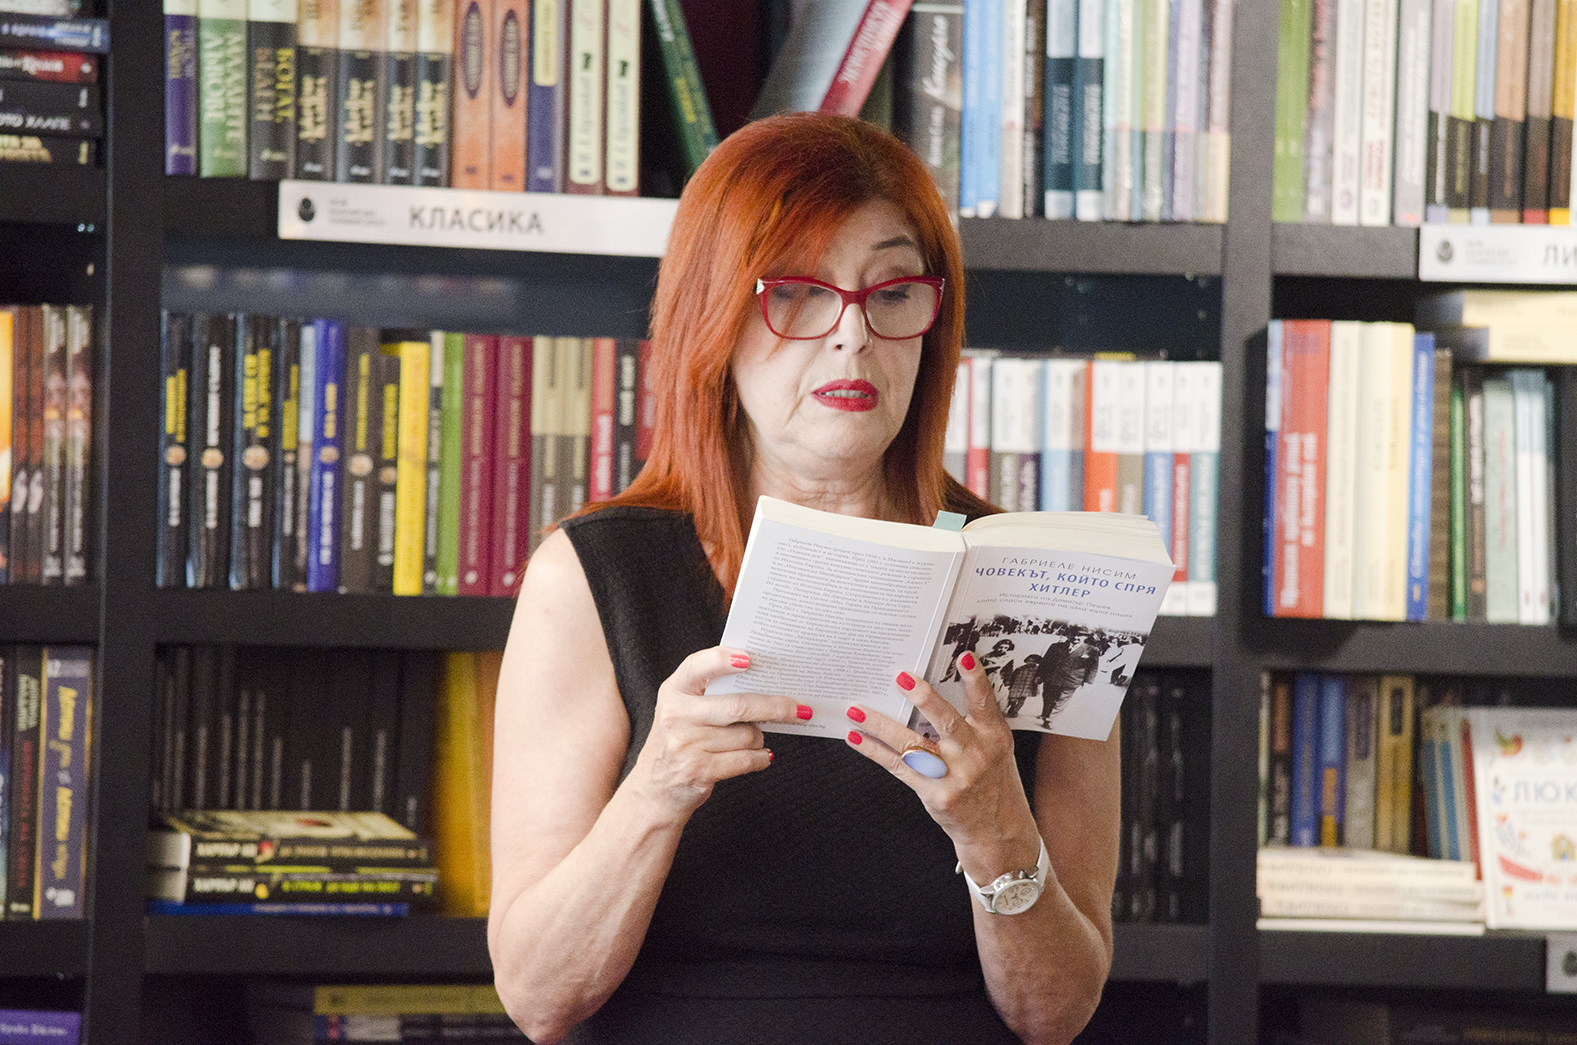 Eva Volitzer reads excerpts from the book